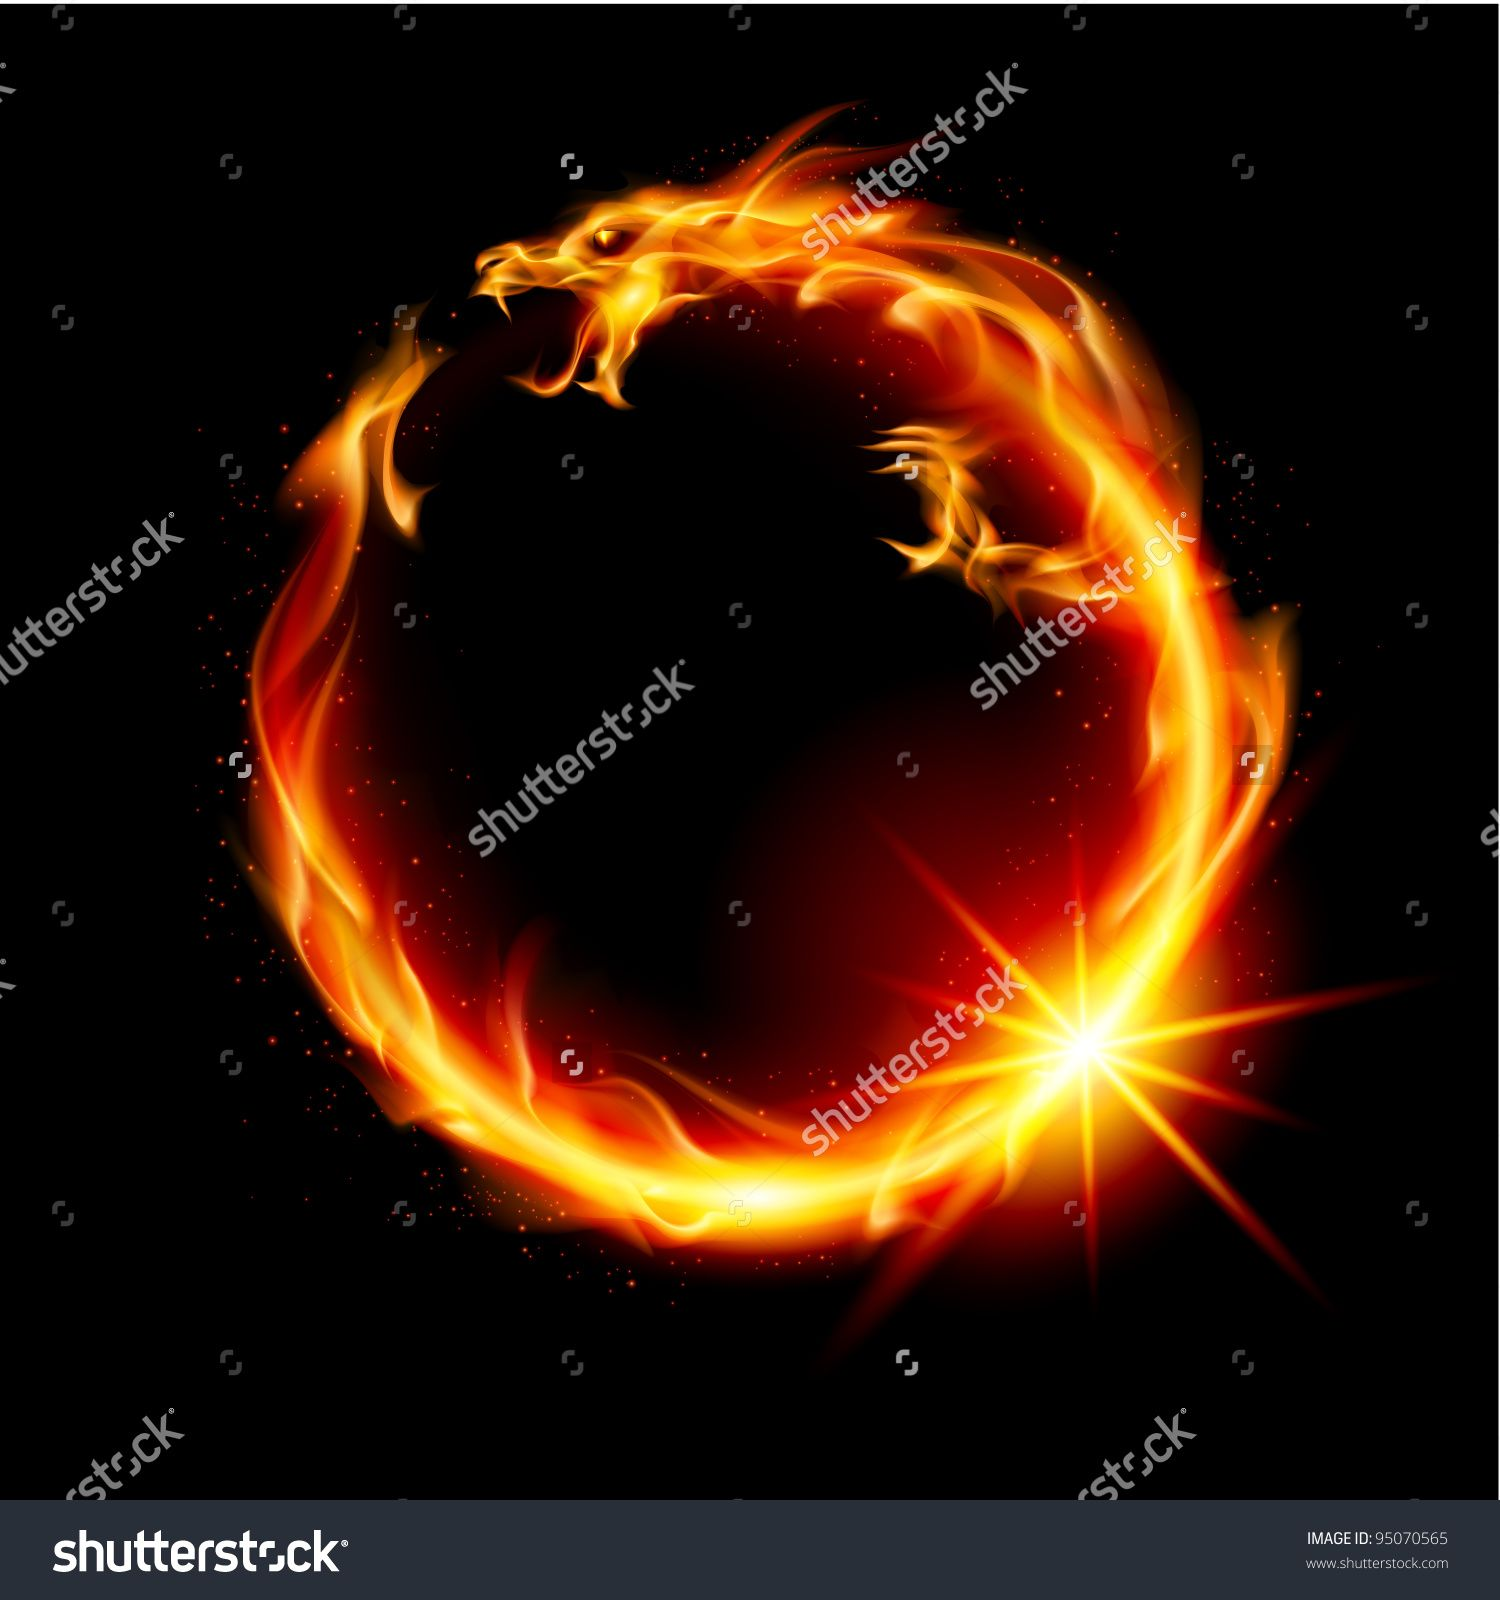 Image result for fire dragon   Fire dragon, Image, Yin yang